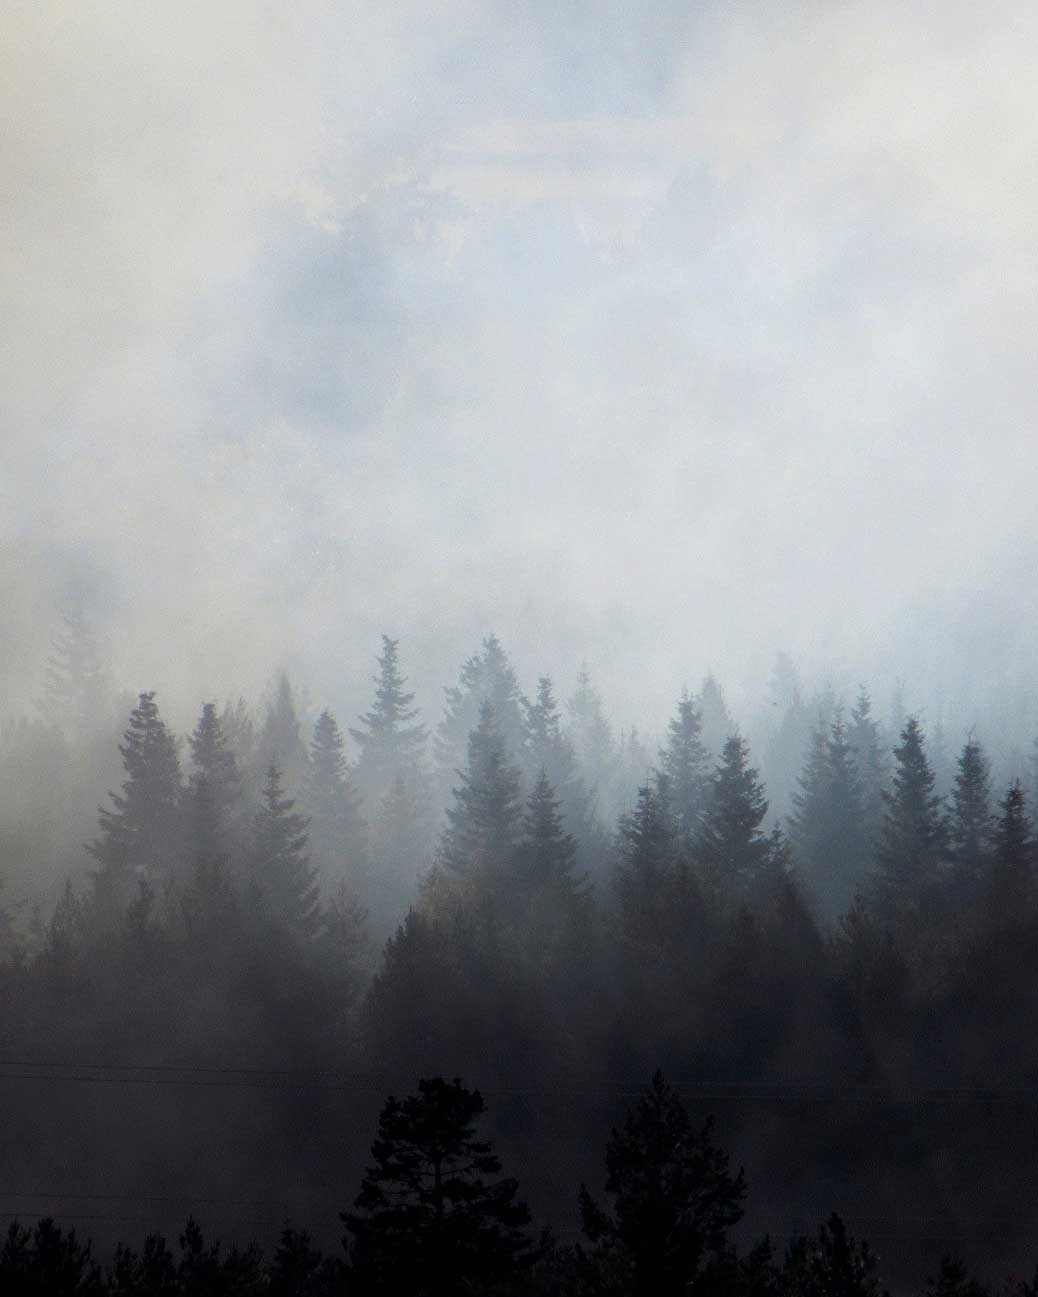 Be prepared for wildfire smoke